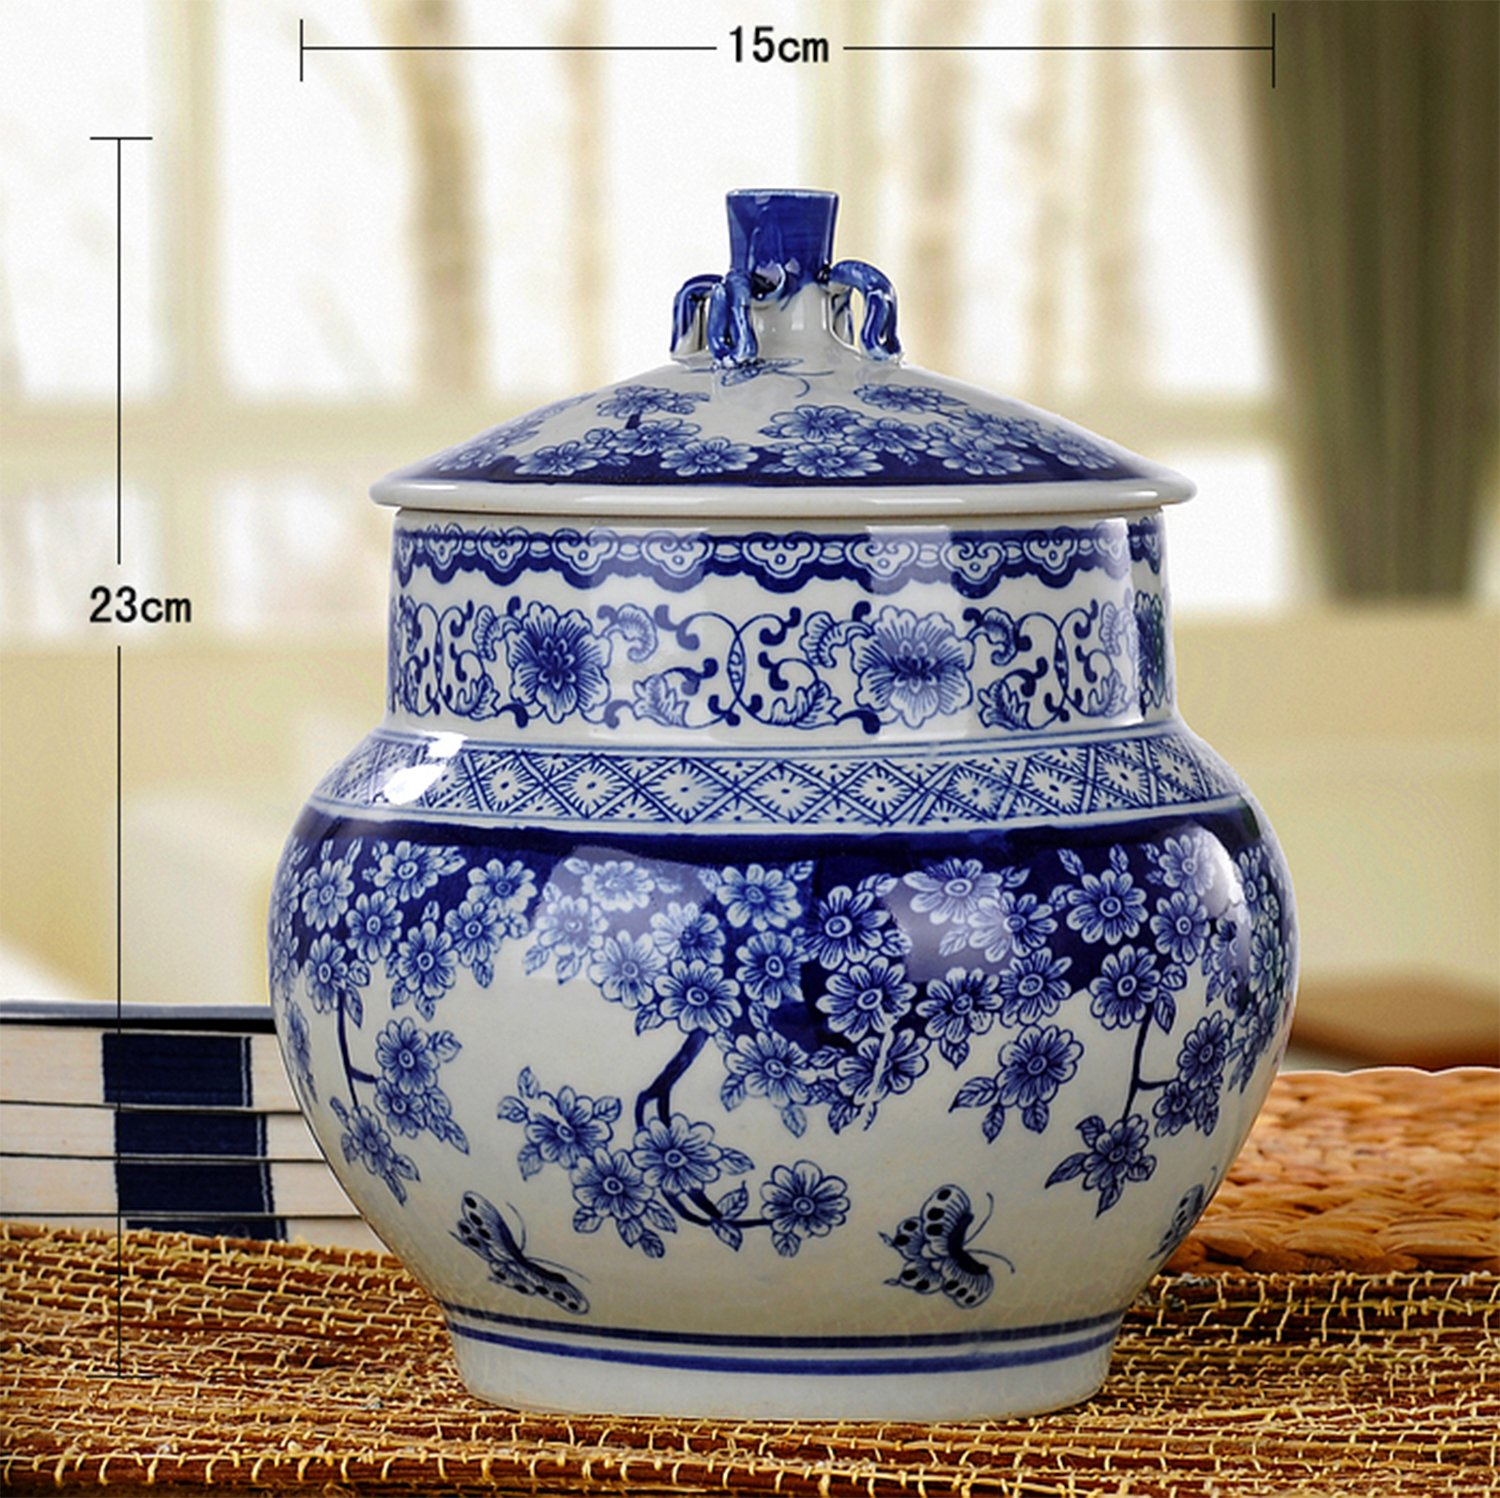 Blue & White Fine Porcelain Jar for Cookie Candy, Home & Office Decor Accent by ALL DECOR